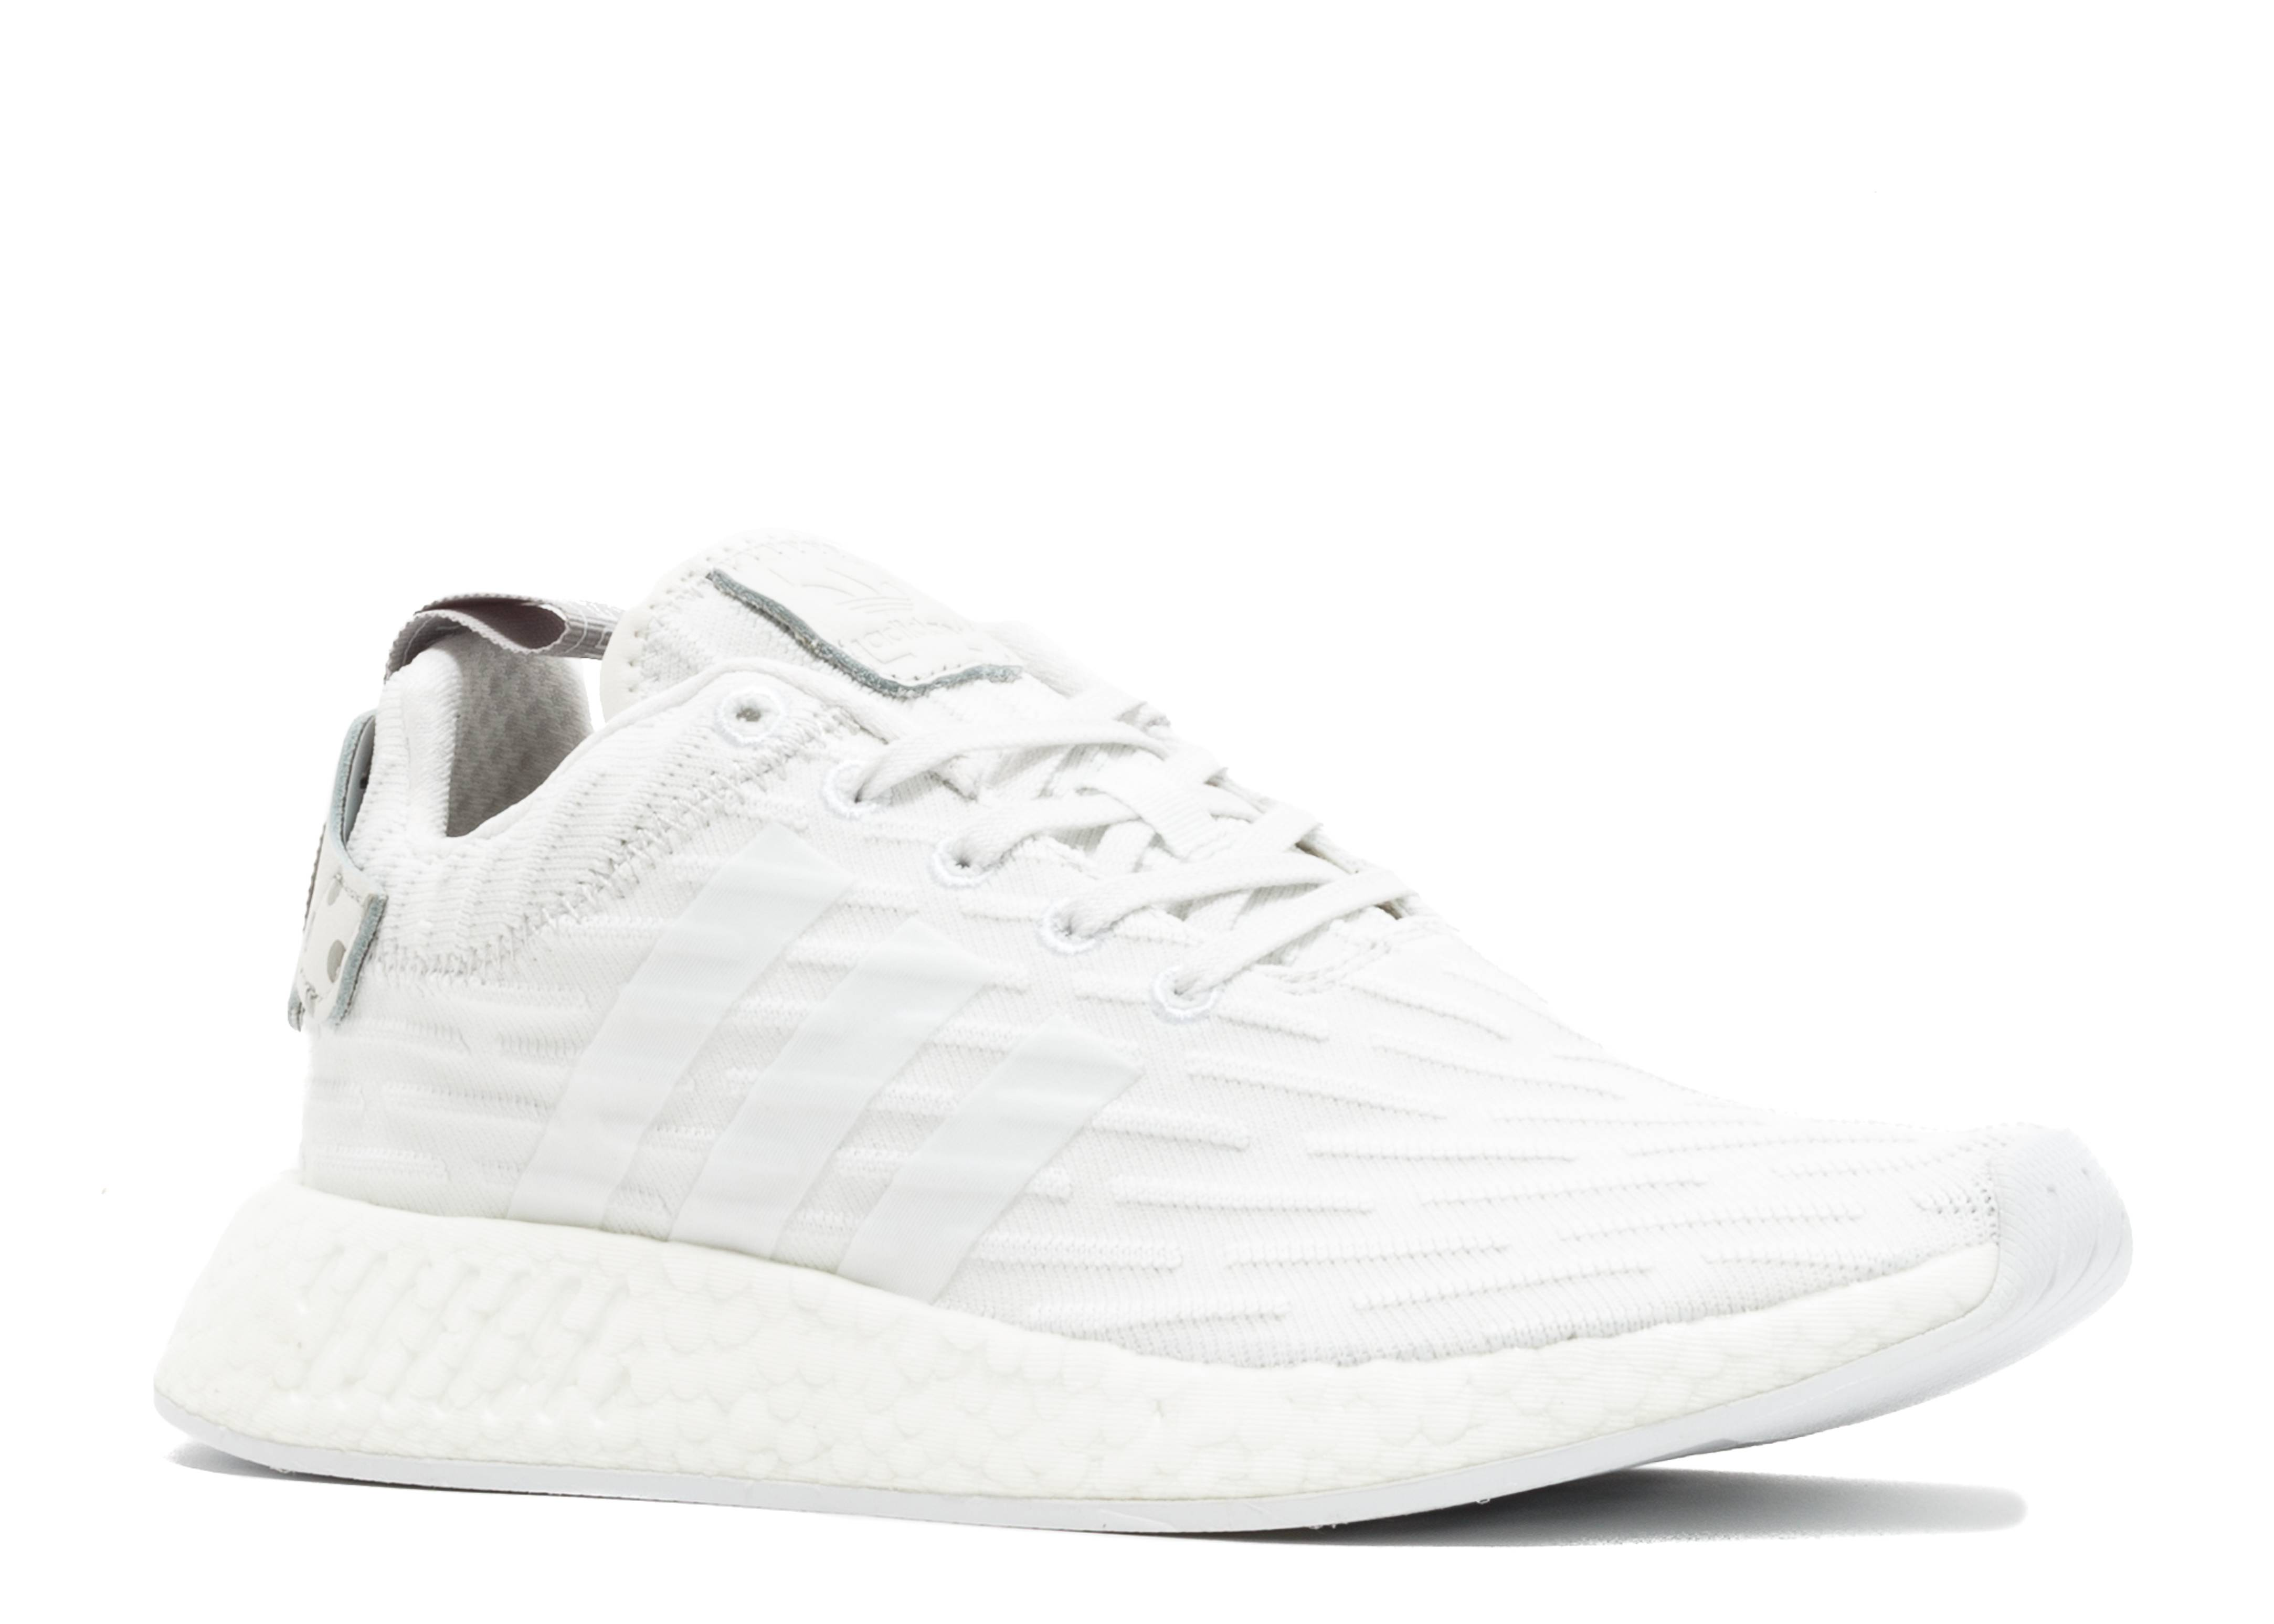 fac65172540 Nmd R2 W - Adidas - BY2245 - clear granite vintage white